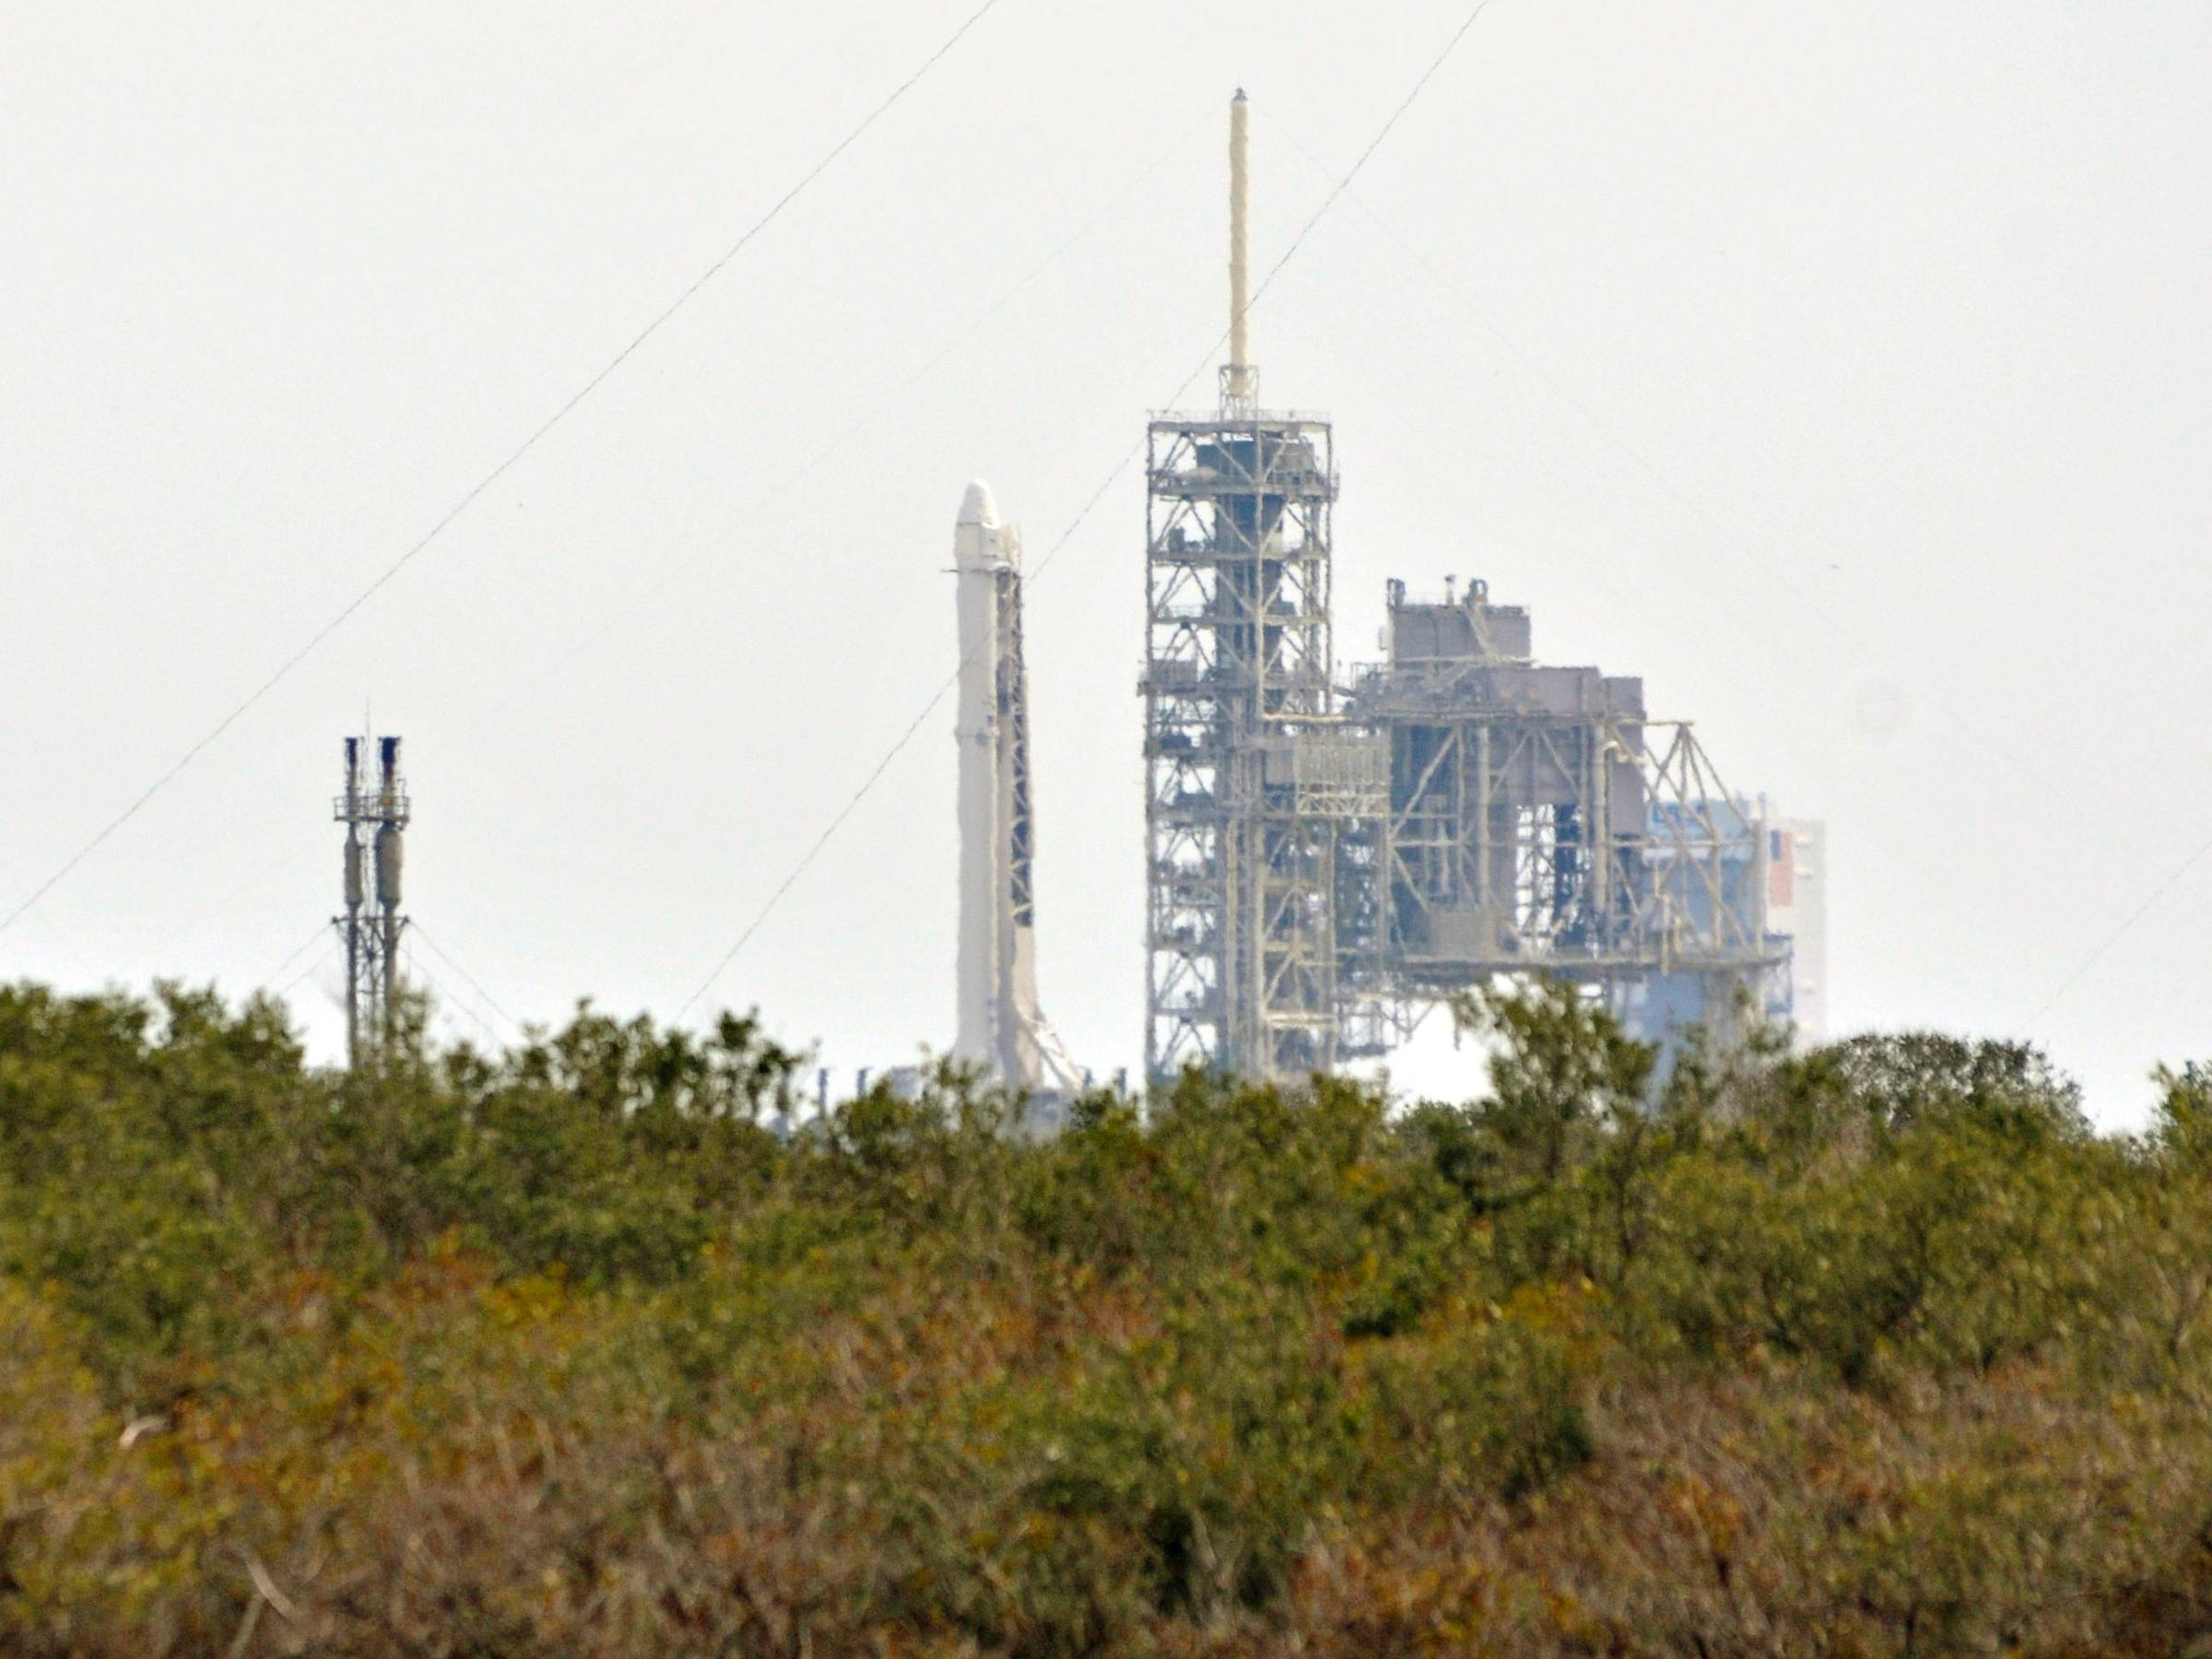 spacex florida - photo #31